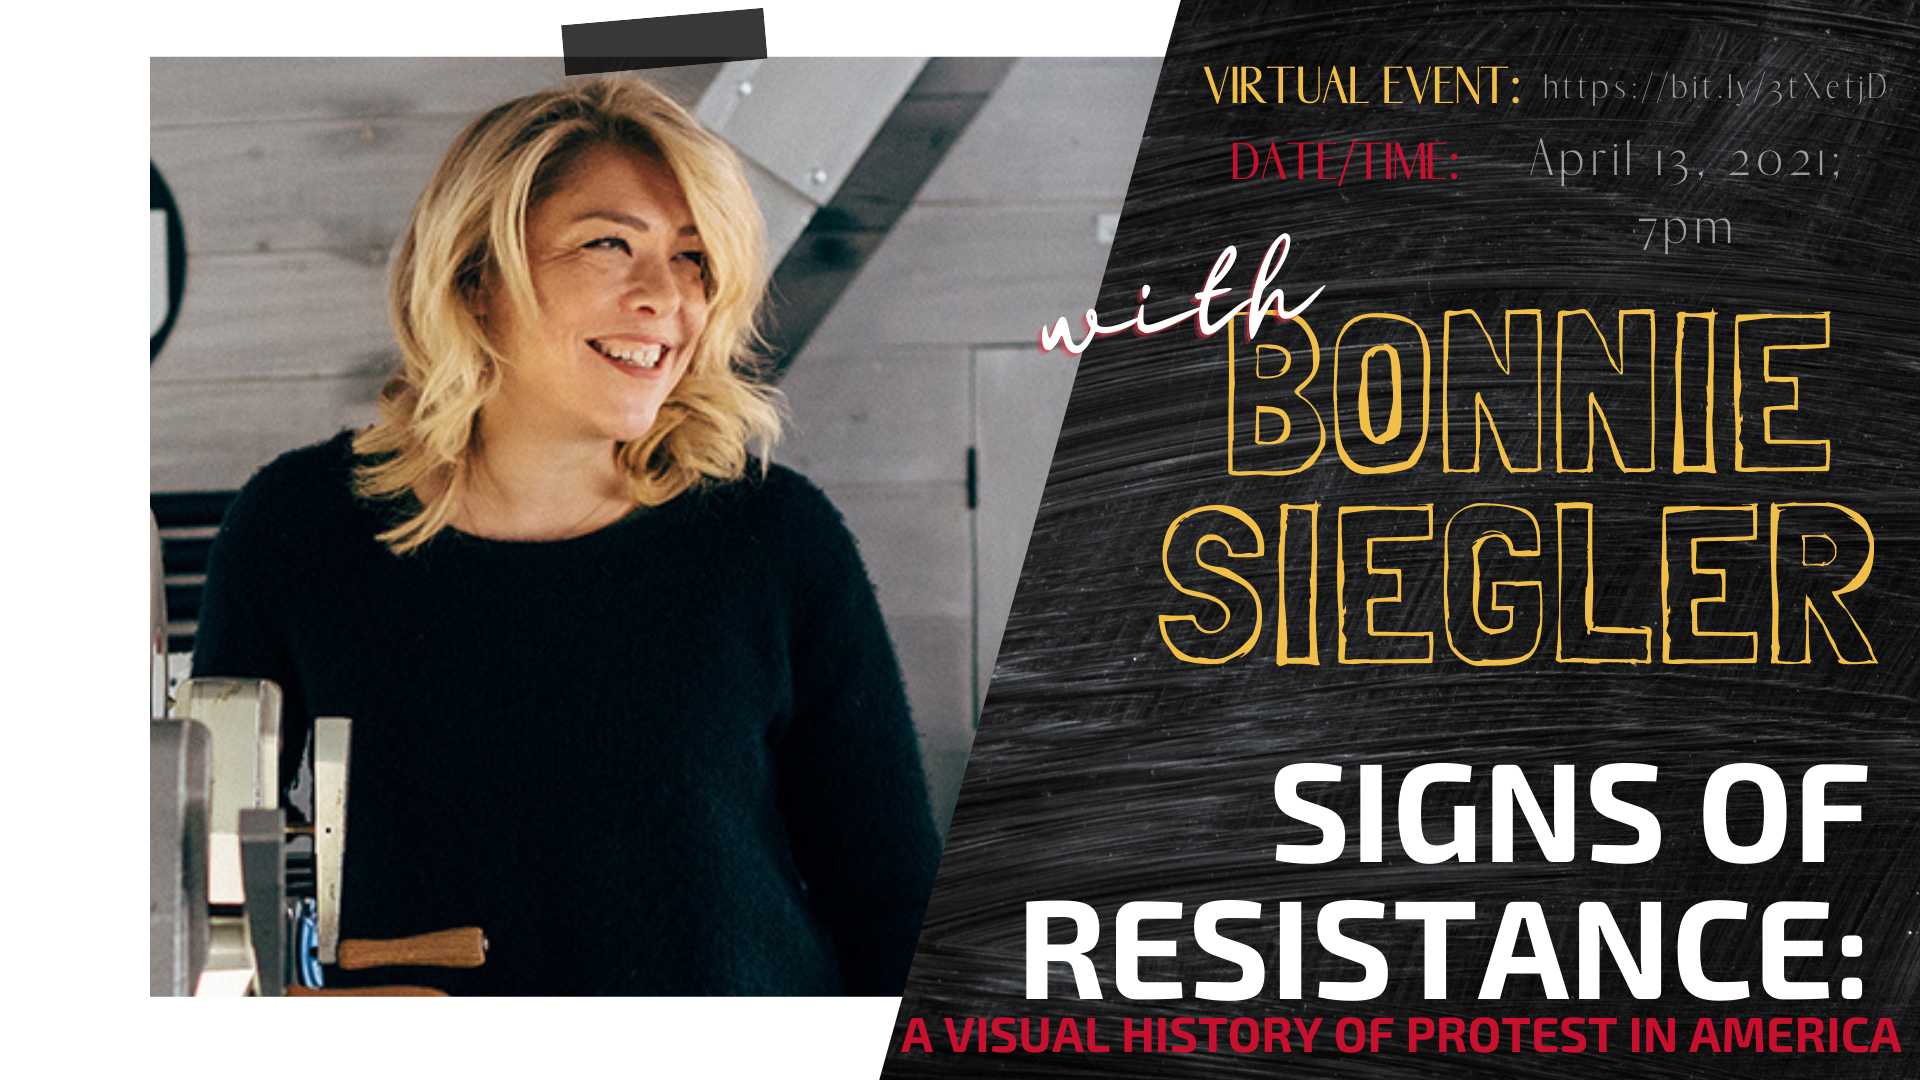 Signs of Resistance: A Visual History of Protest in America with Bonnie Siegler, April 13, 2021 with headshot